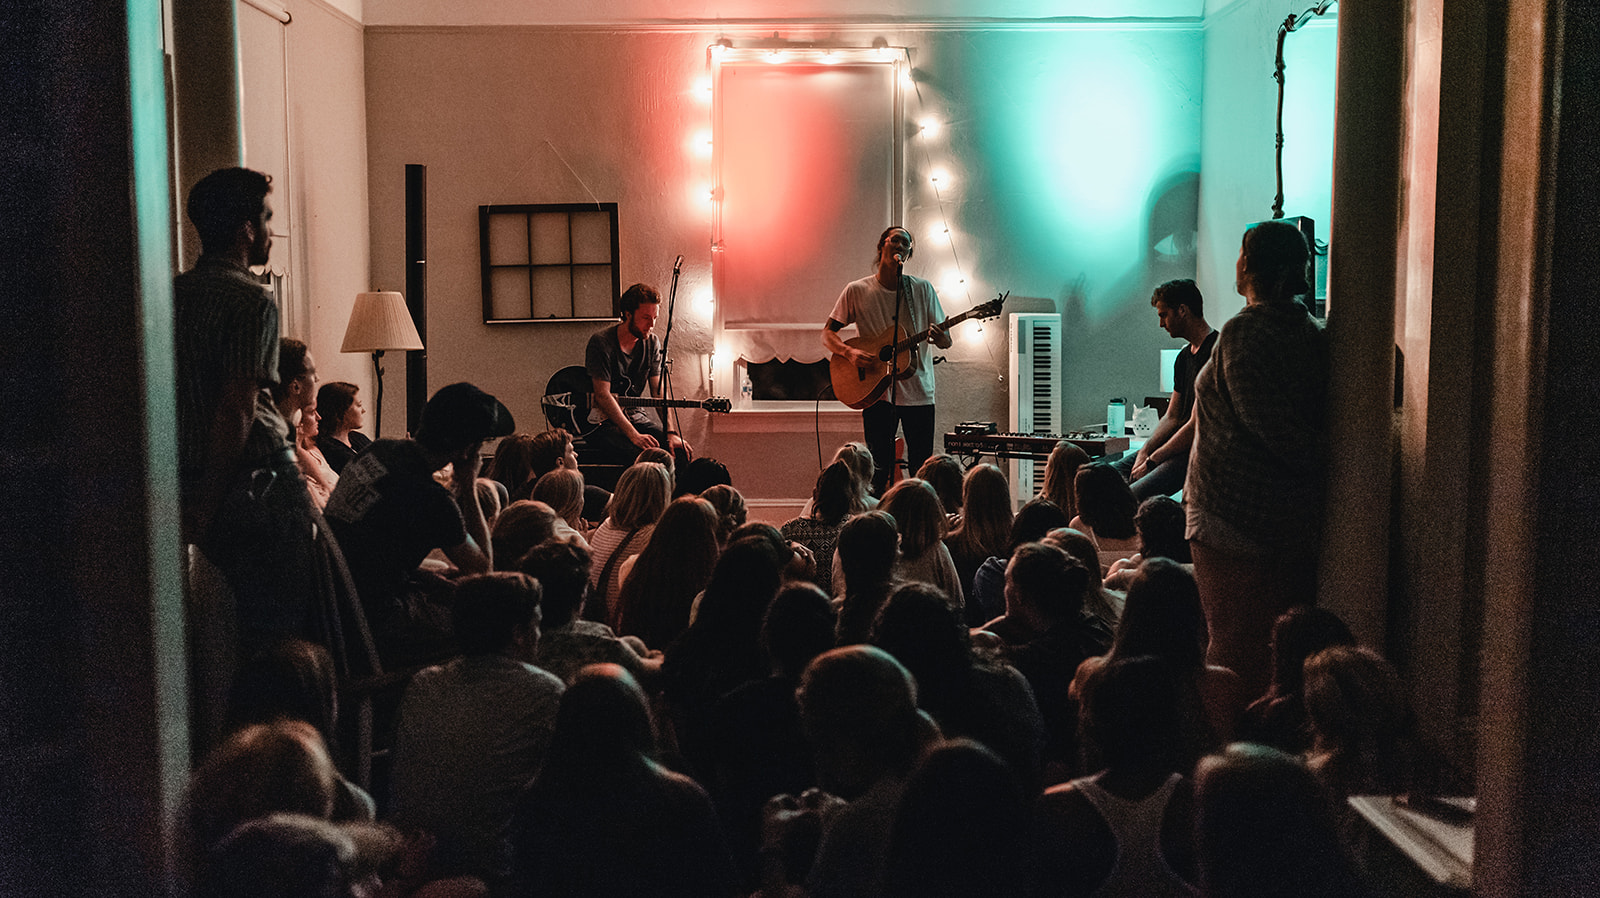 House Show in Milledgeville. (photo by @brookshnsn)